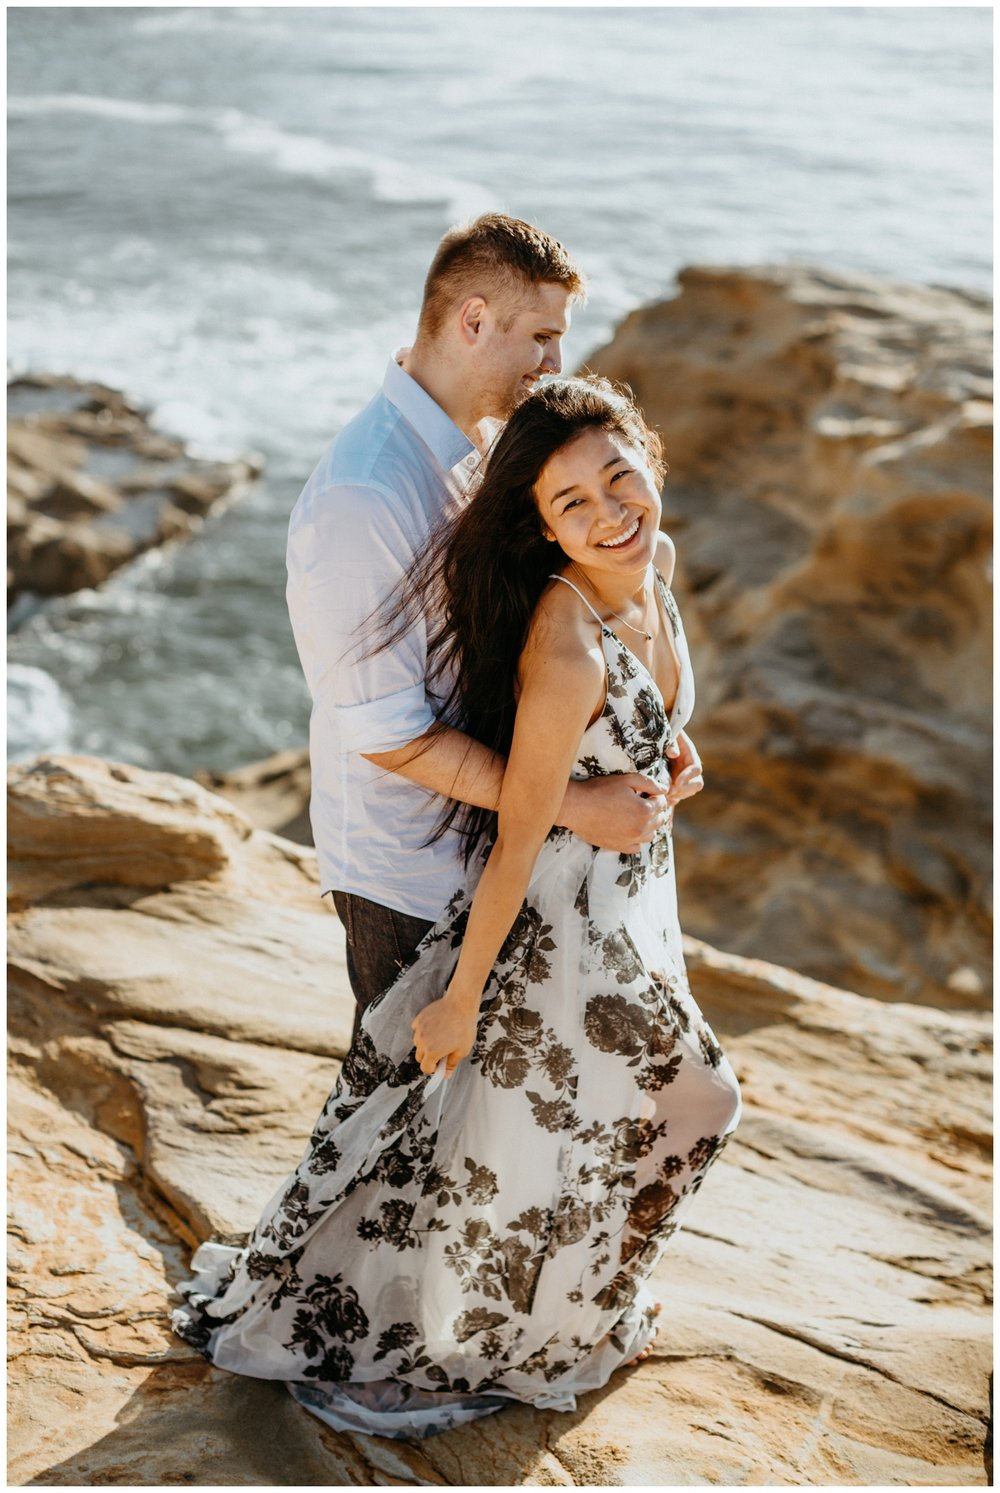 cape_kiwanda_beach_engagement_shoot_0059.jpg